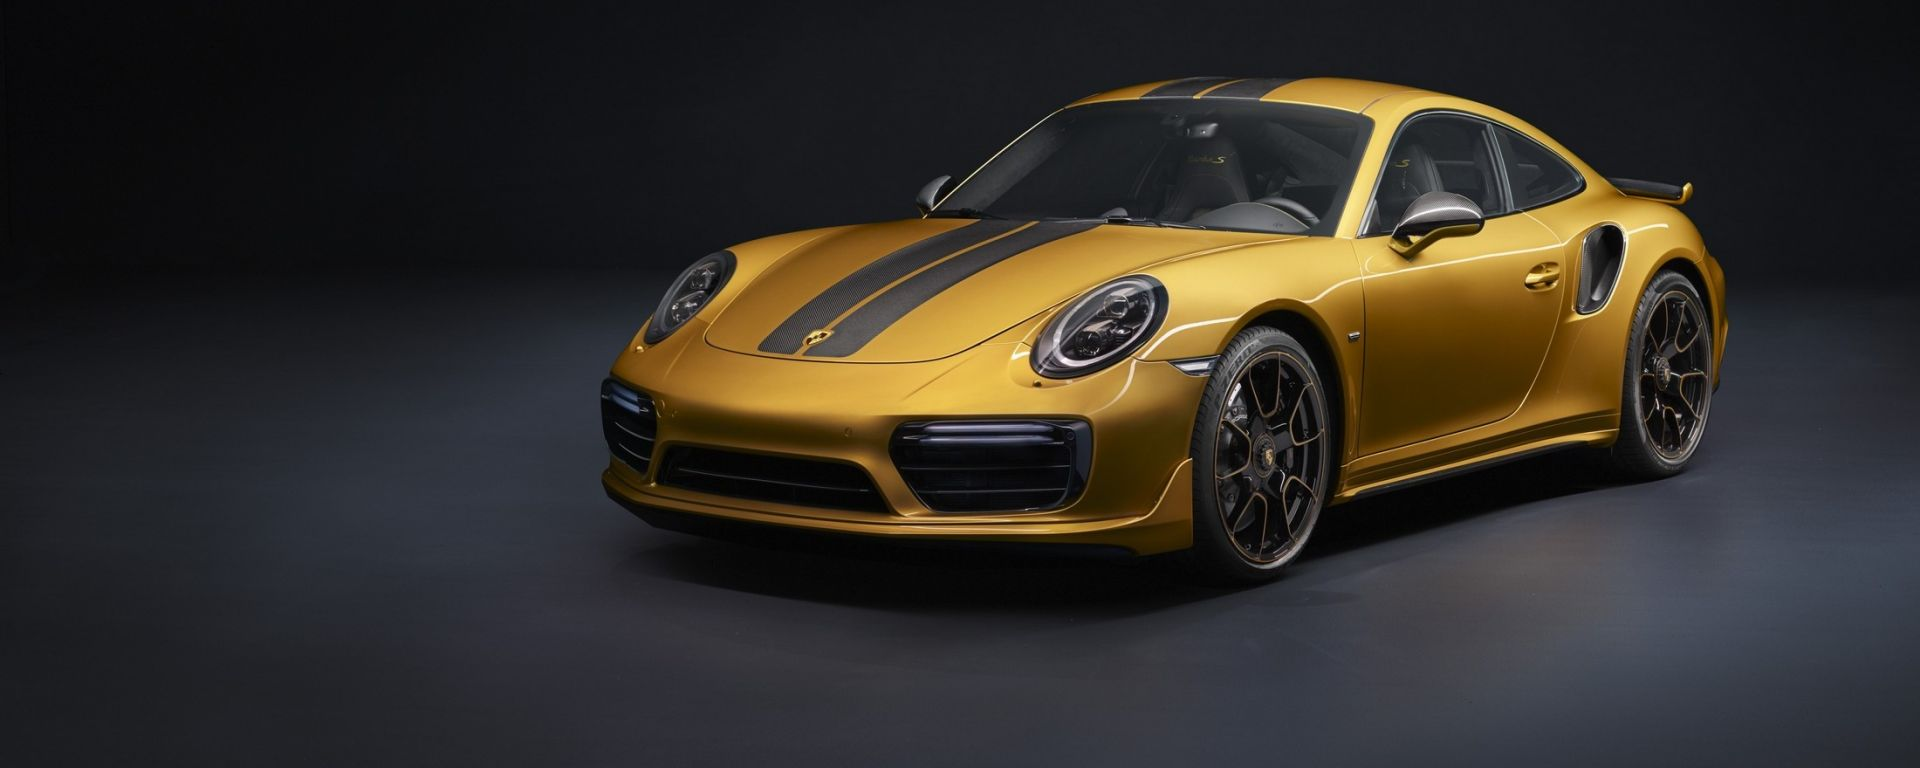 Porsche 911 Turbo S Exclusive Series: vista 3/4 anteriore